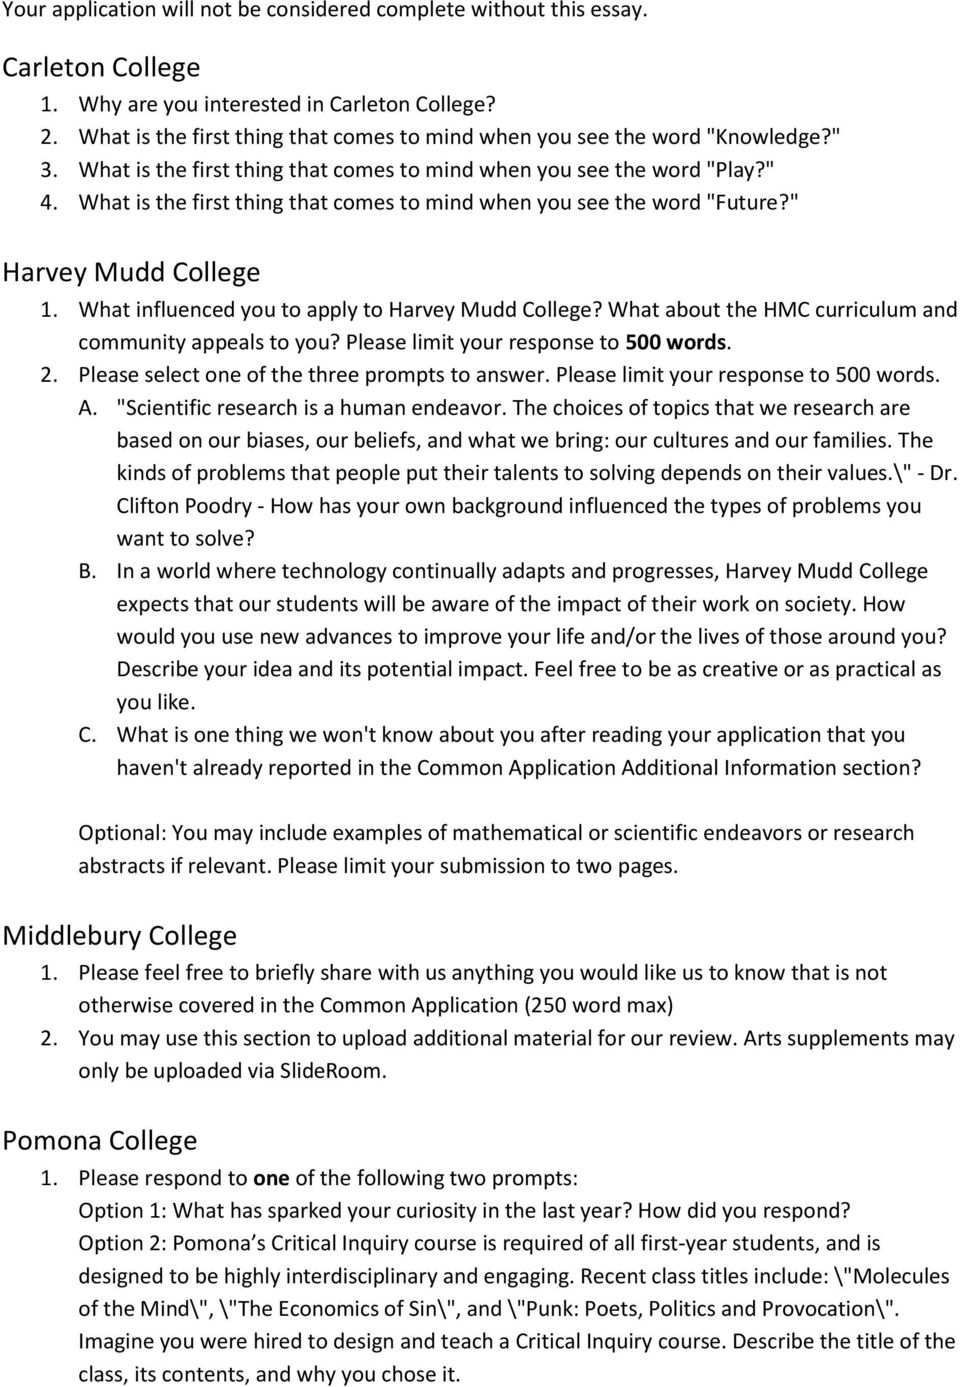 college stress essay View essay - essay causes of stress to a community college student from egl 1010 at bowie state lovanne milton paper 3 egl 1010- cause and effect topic.